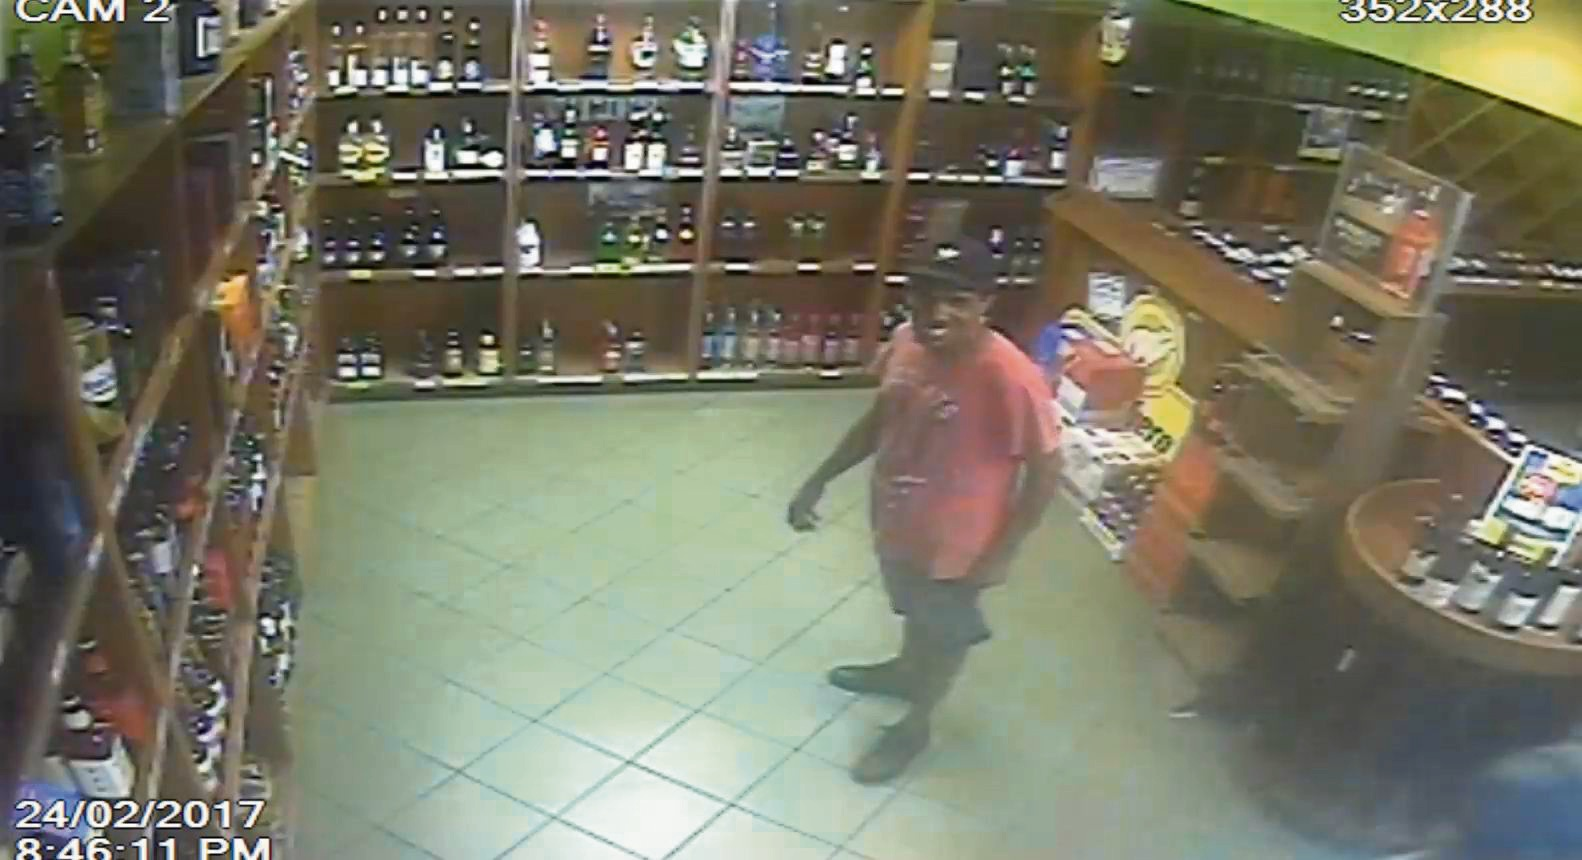 Rockingham: Liquor store staff threatened by men with a knife and a hammer